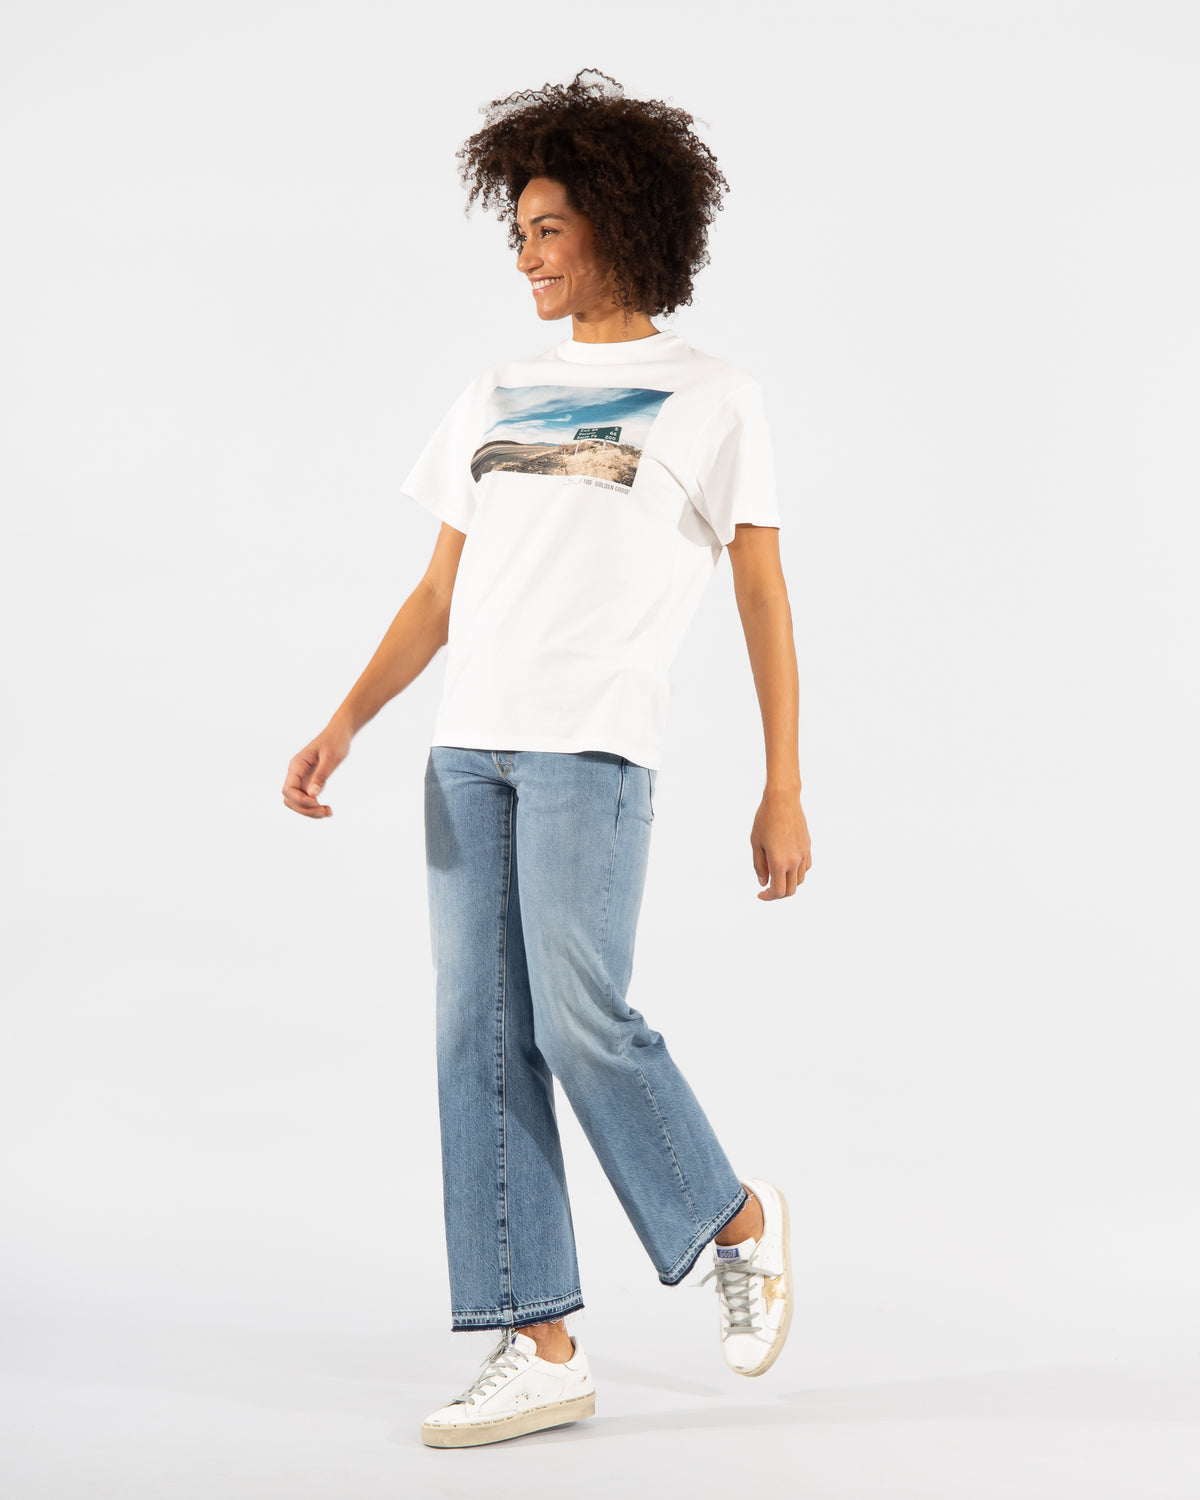 Golden Goose Damen Jeans aus Baumwolle in blau denim